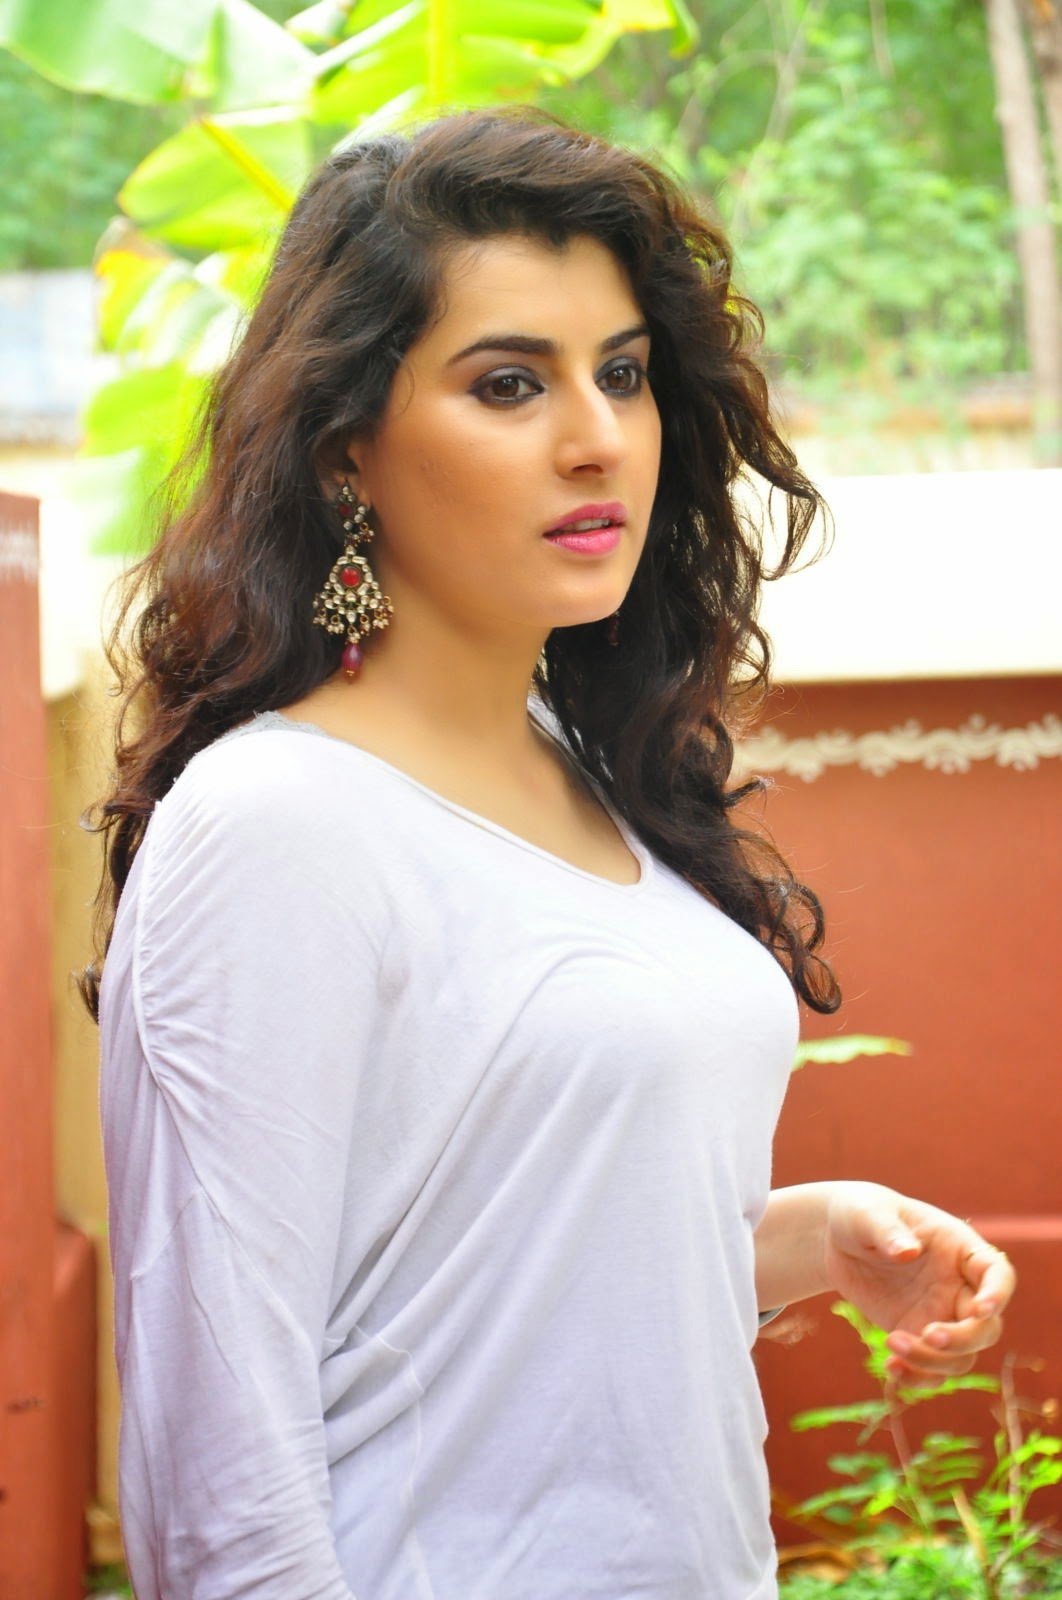 Archana veda hot white top photoshoot archana veda hd wallpapers all about tollywood - Archana wallpaper ...